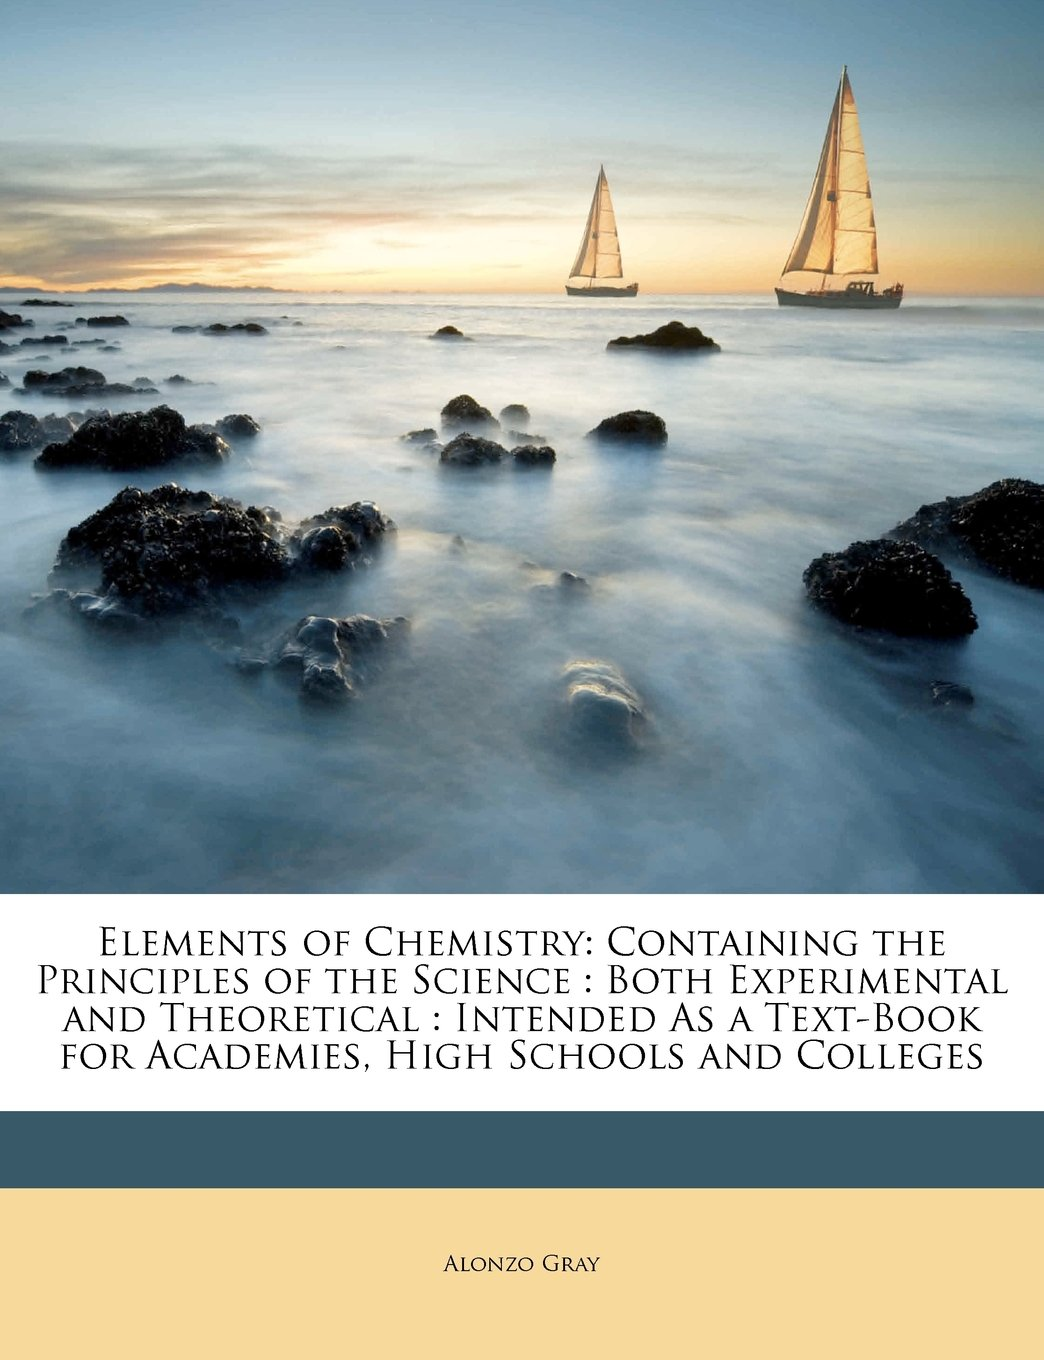 Download Elements of Chemistry: Containing the Principles of the Science : Both Experimental and Theoretical : Intended As a Text-Book for Academies, High Schools and Colleges ebook